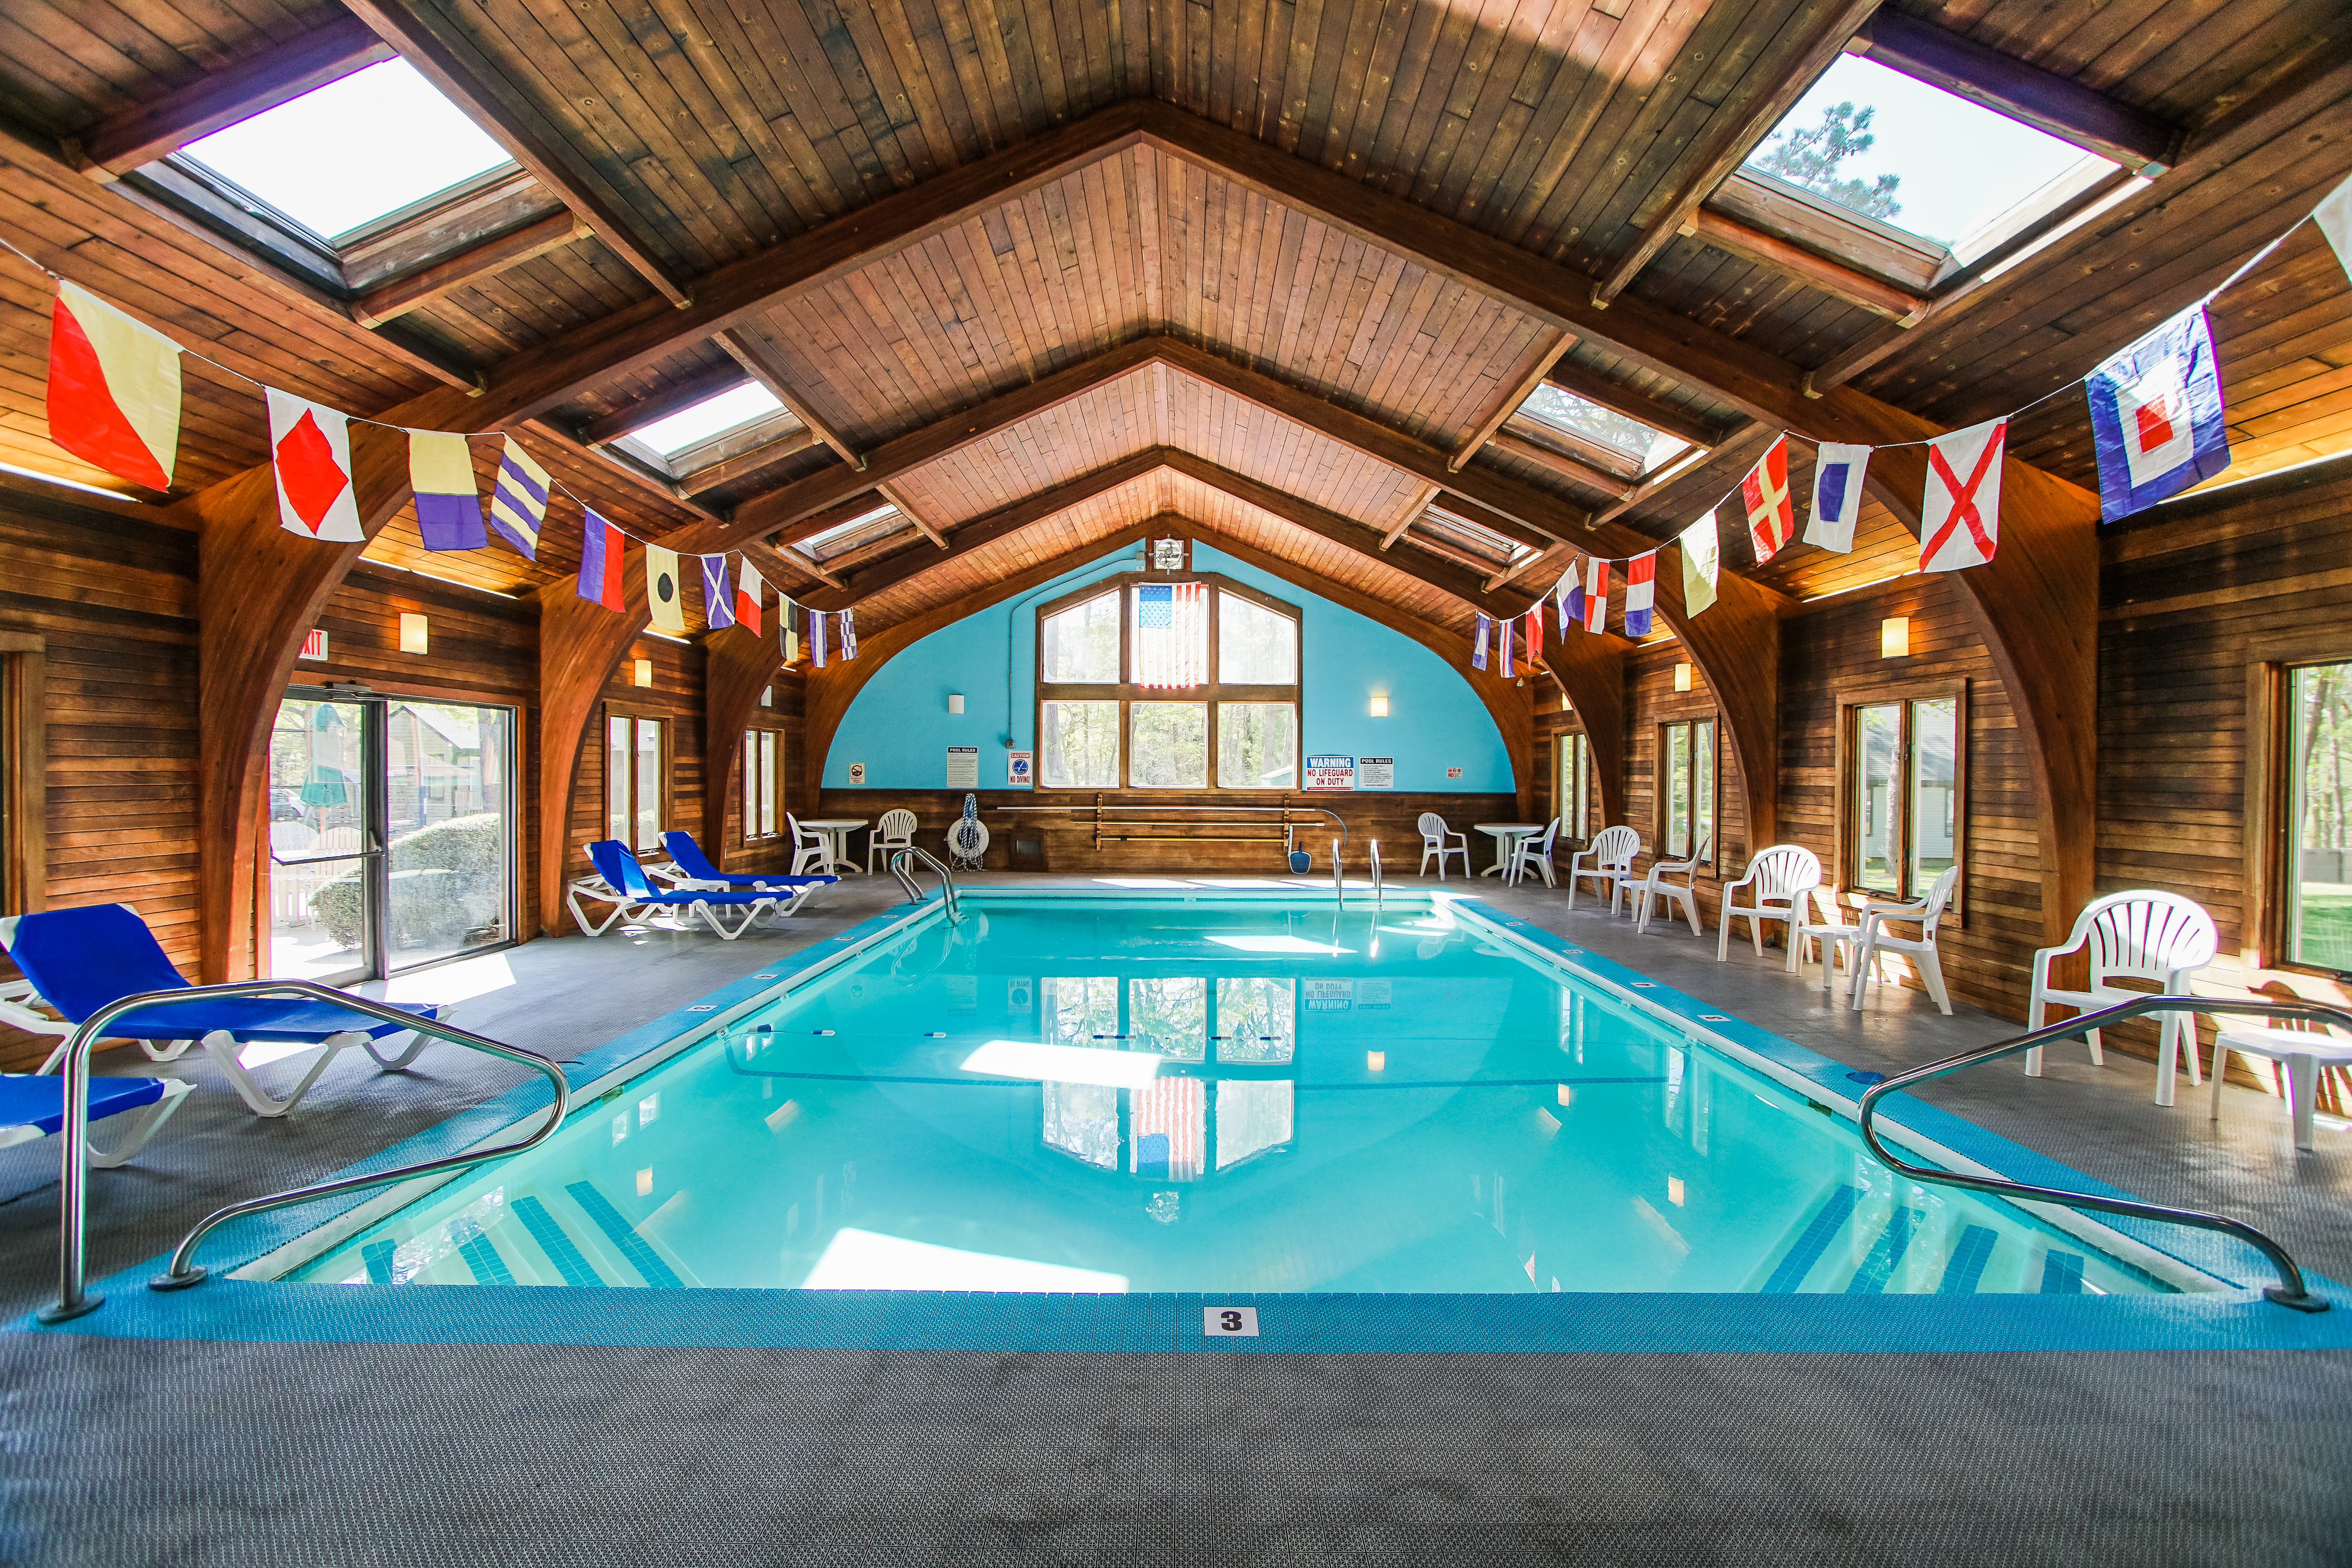 A stoic indoor swimming pool at VRI's Cape Cod Holiday Estates in Massachusetts.